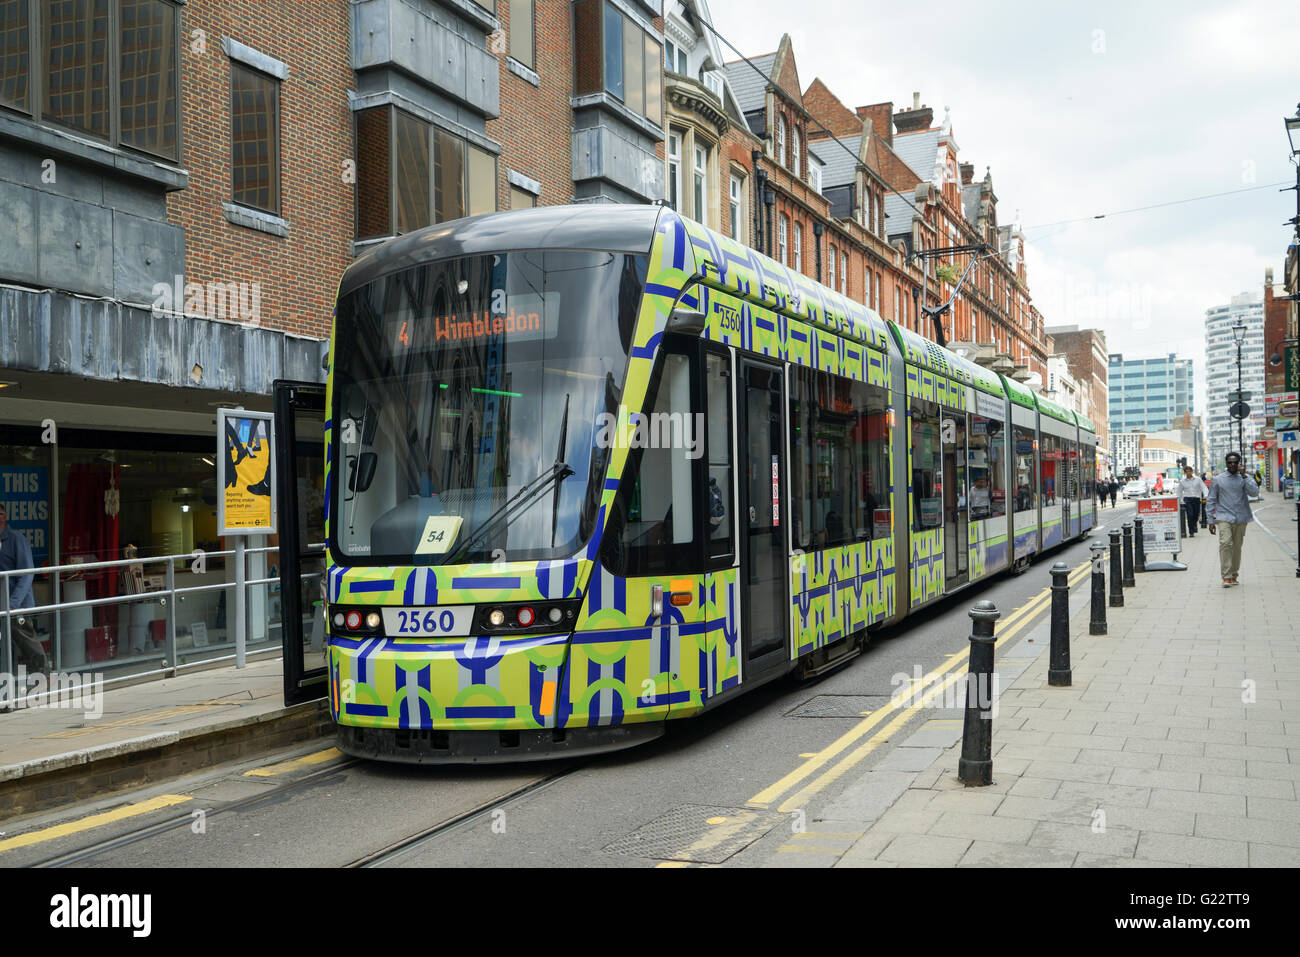 Croydon Variobahn Tram at George Street Stop in 'Unwrapping' Livery -1 - Stock Image